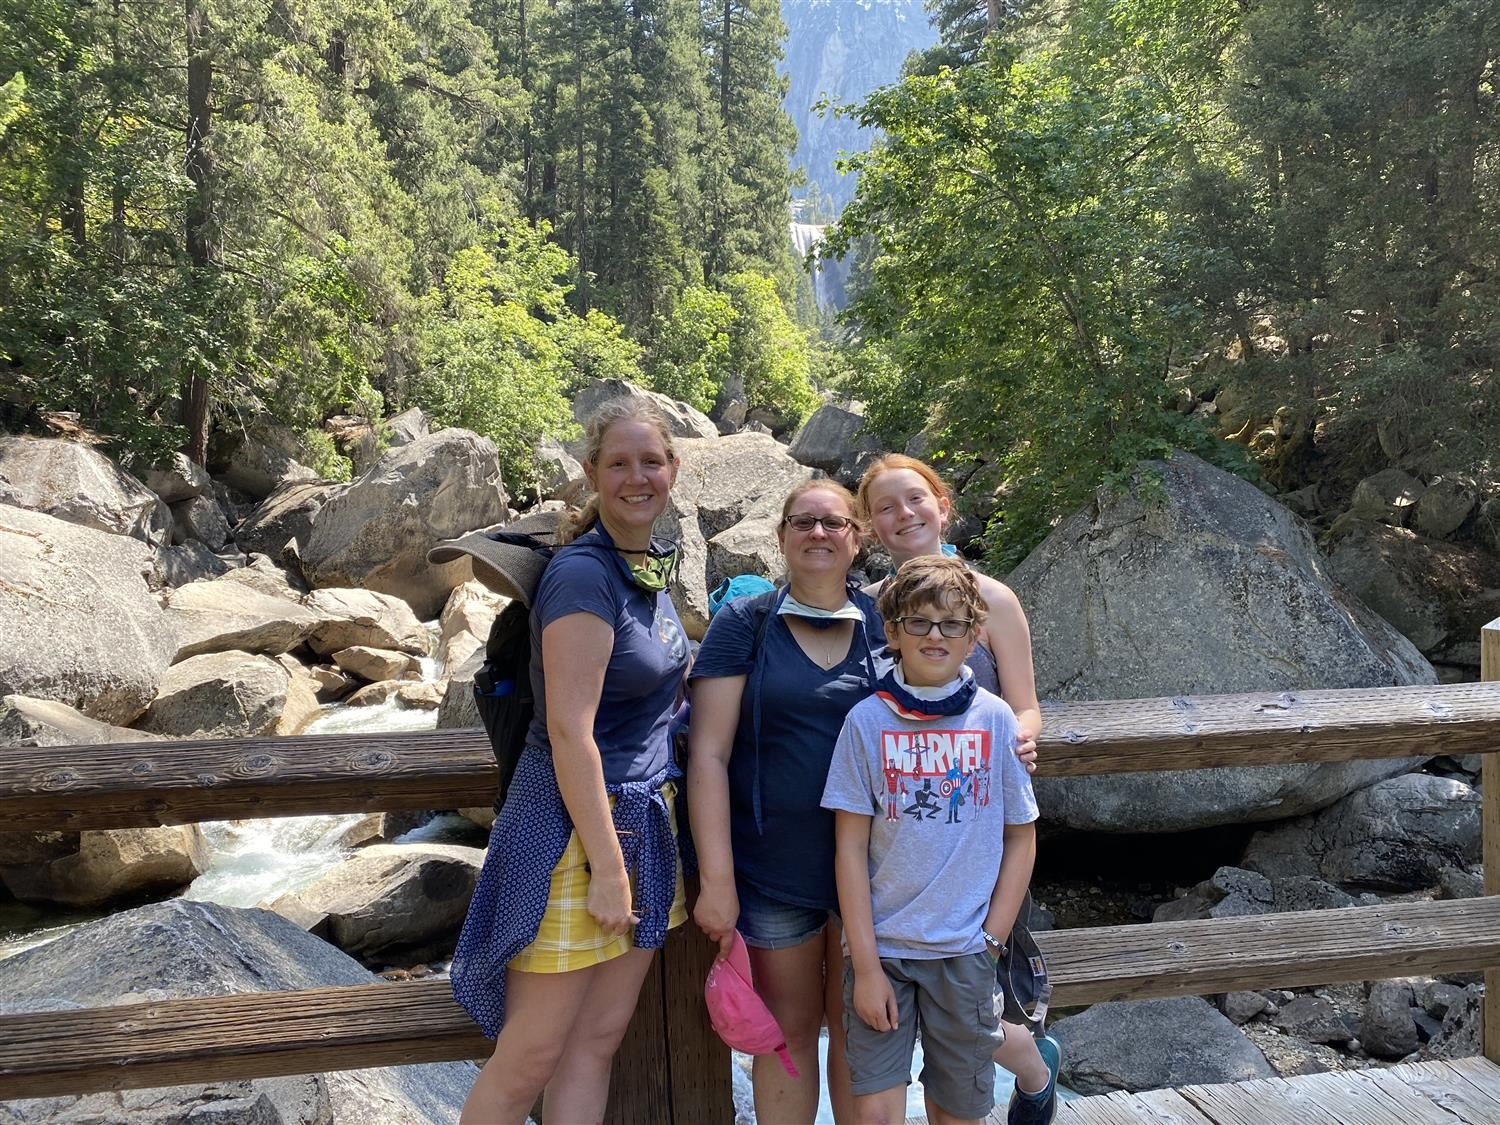 Yosemite Summer 2020 - masks pulled down for the picture!